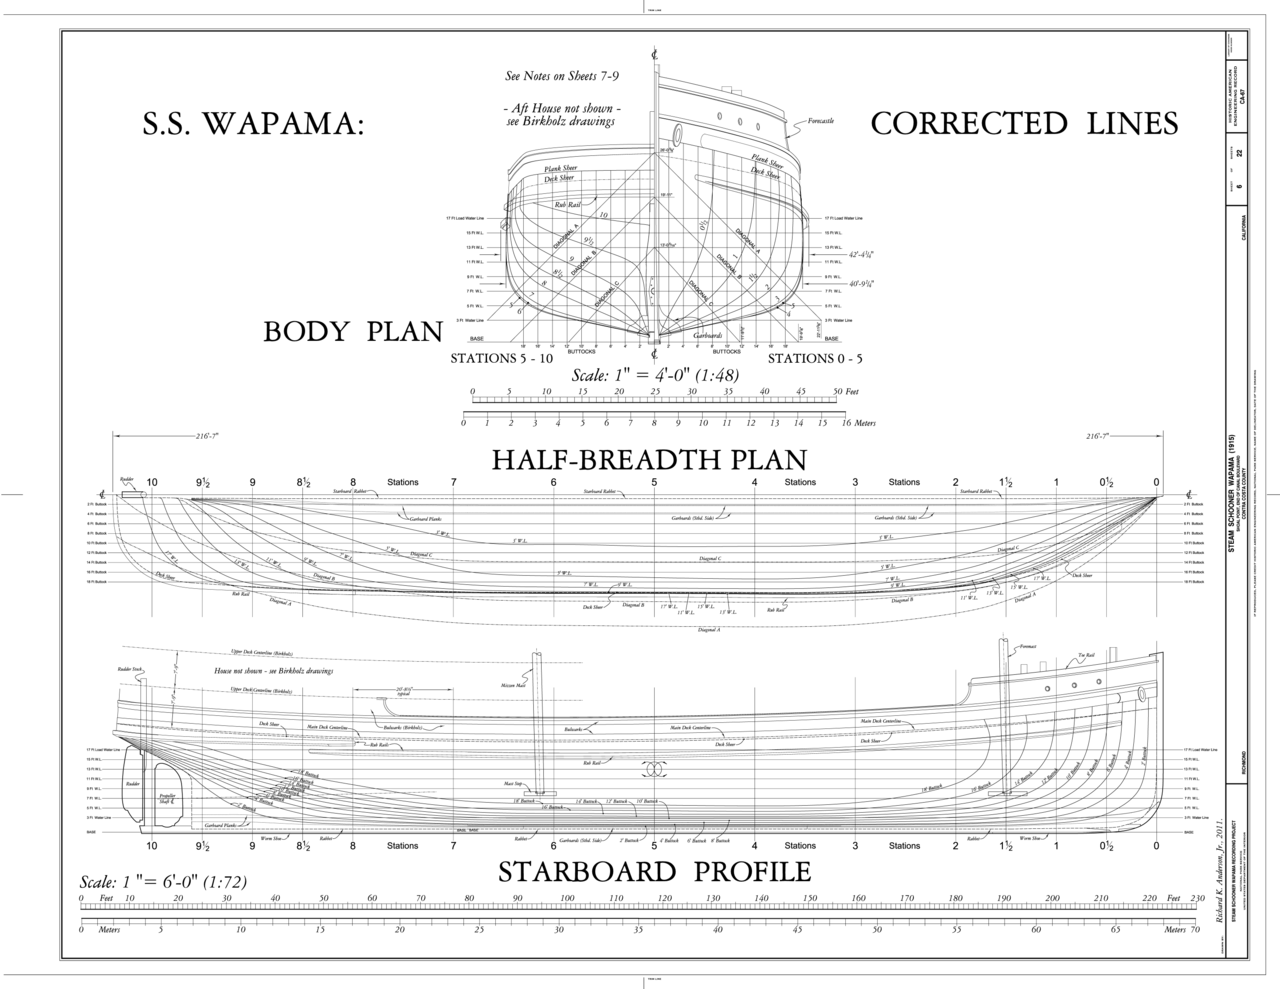 File Corrected Lines Body Plan Half Breadth Plan